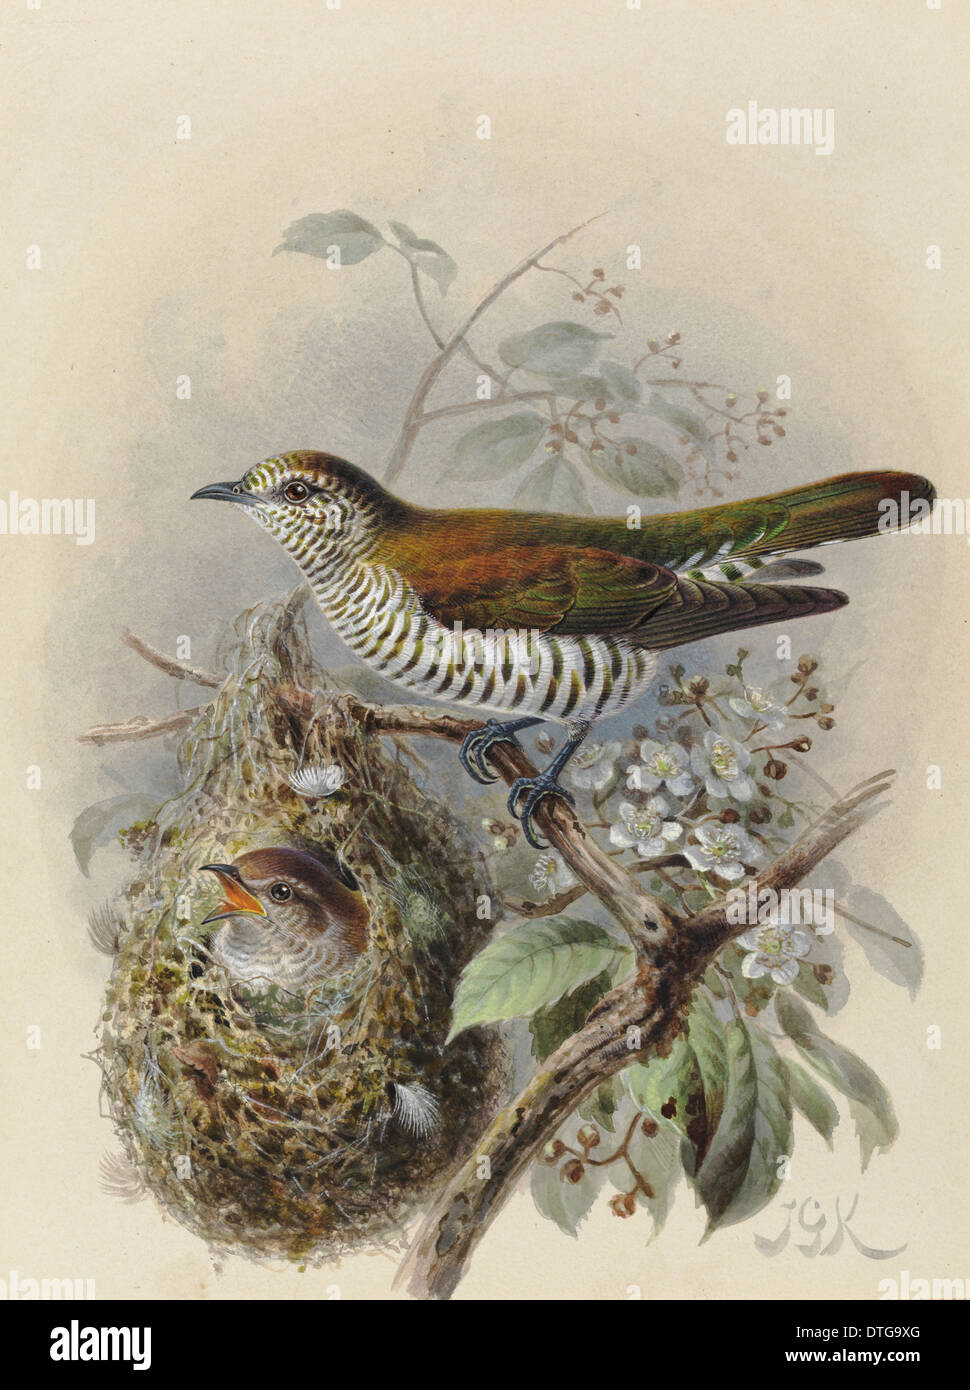 Shining Cuckoo 'Pipiwharauroa', Chrysococcyx lucidus lucidus (adult with young in Grey Warbler nest) - Stock Image